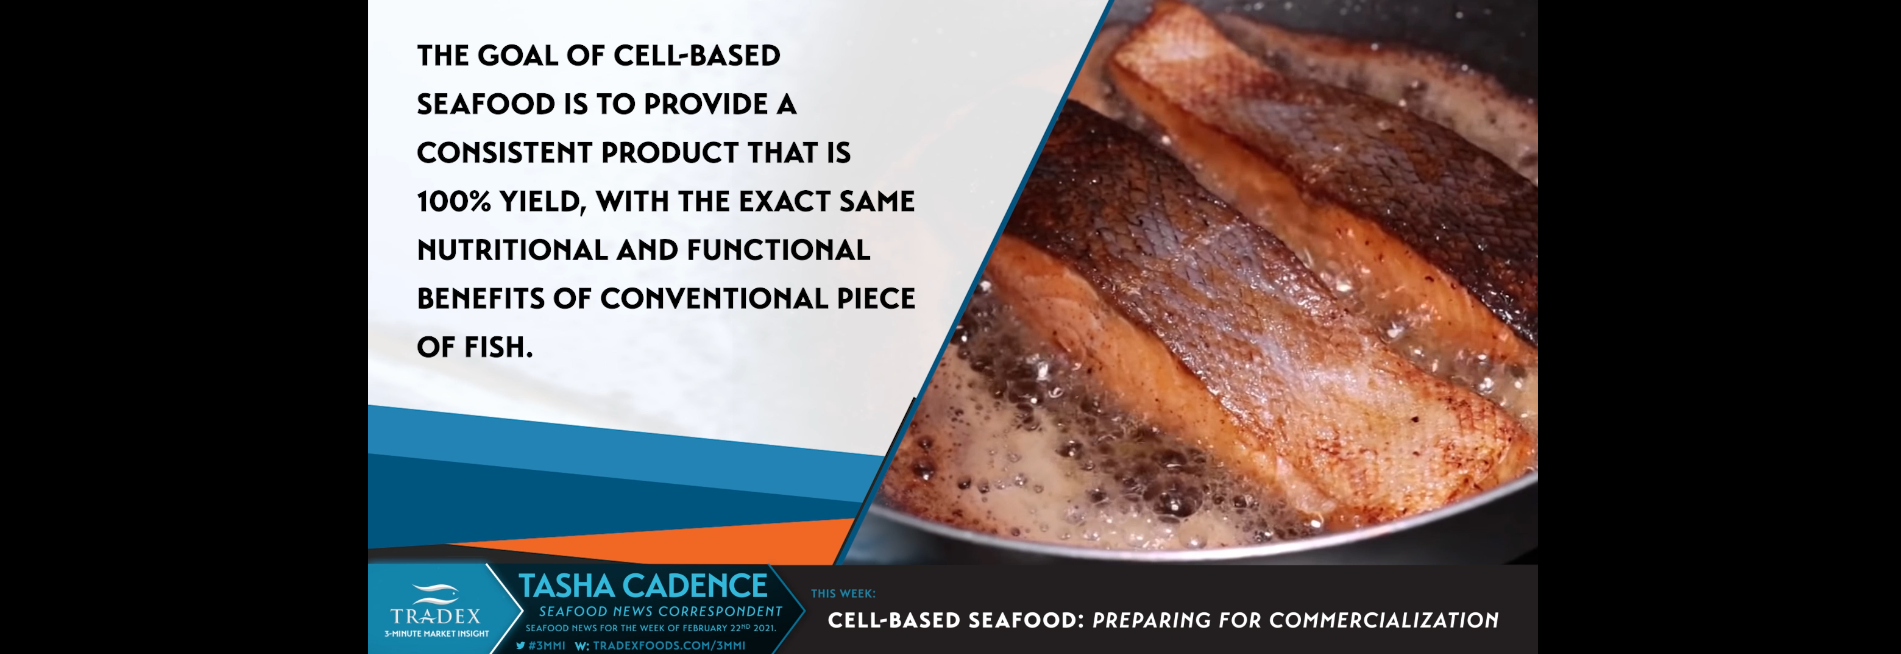 Cell-Based Seafood